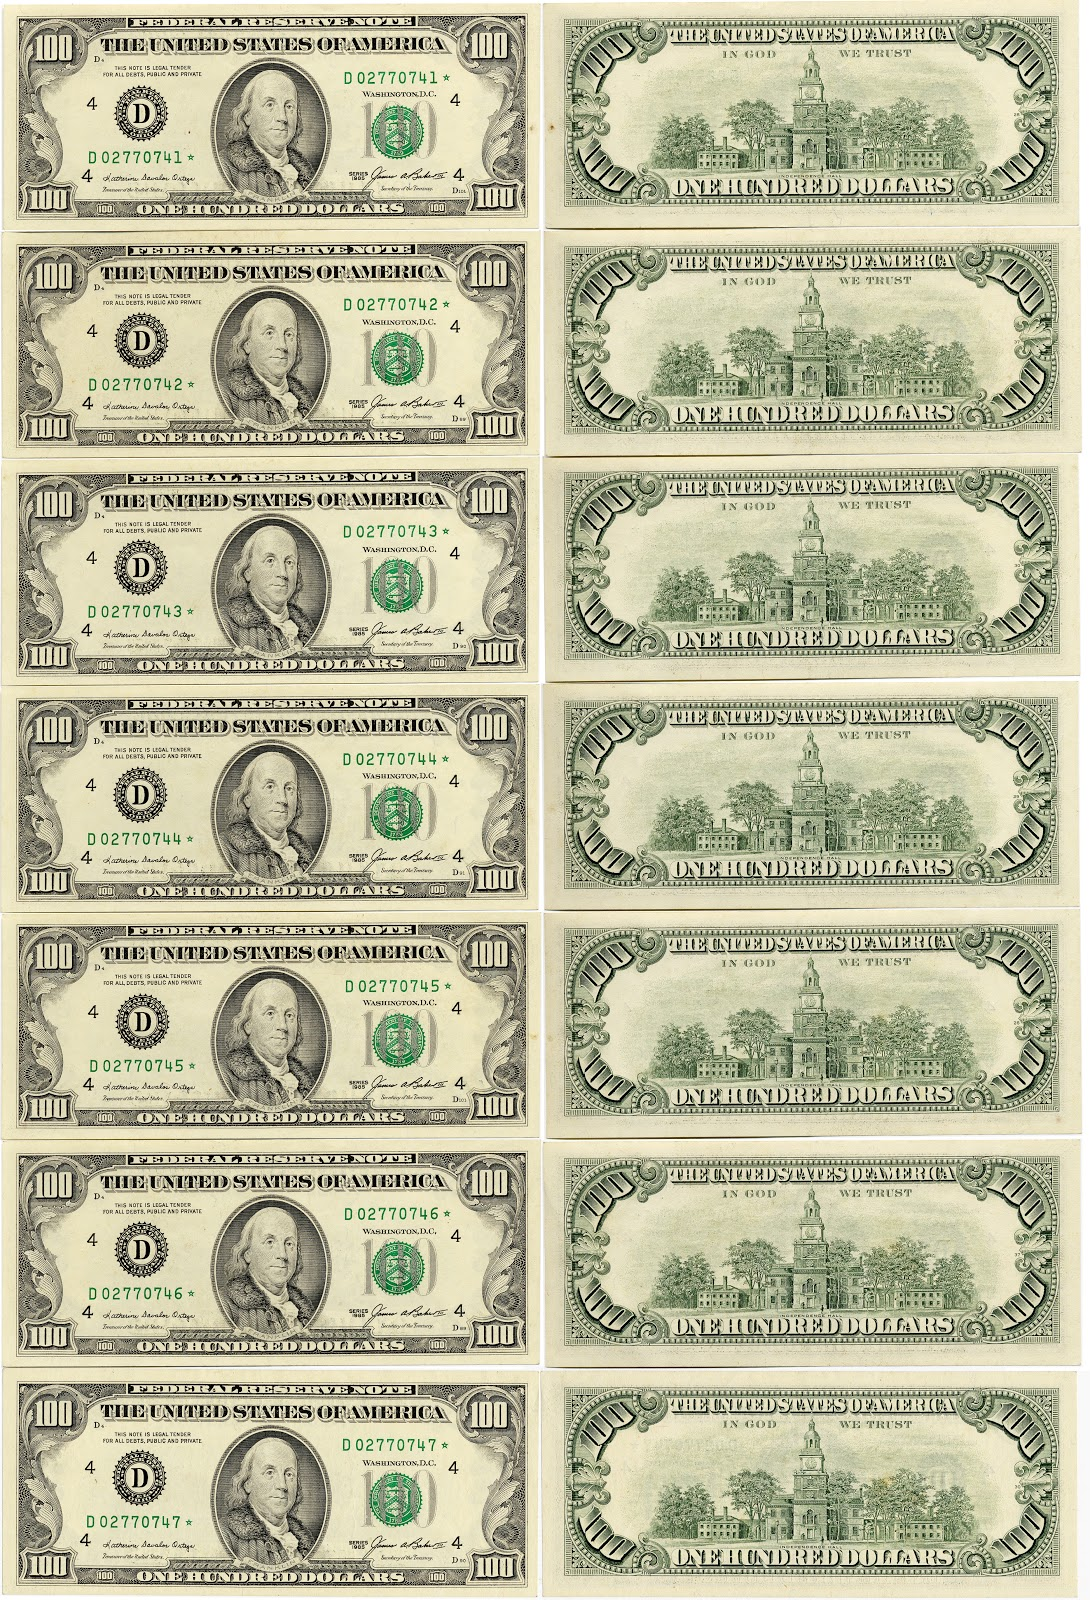 It's just a photo of Dynamite Free Printable 100 Dollar Bill